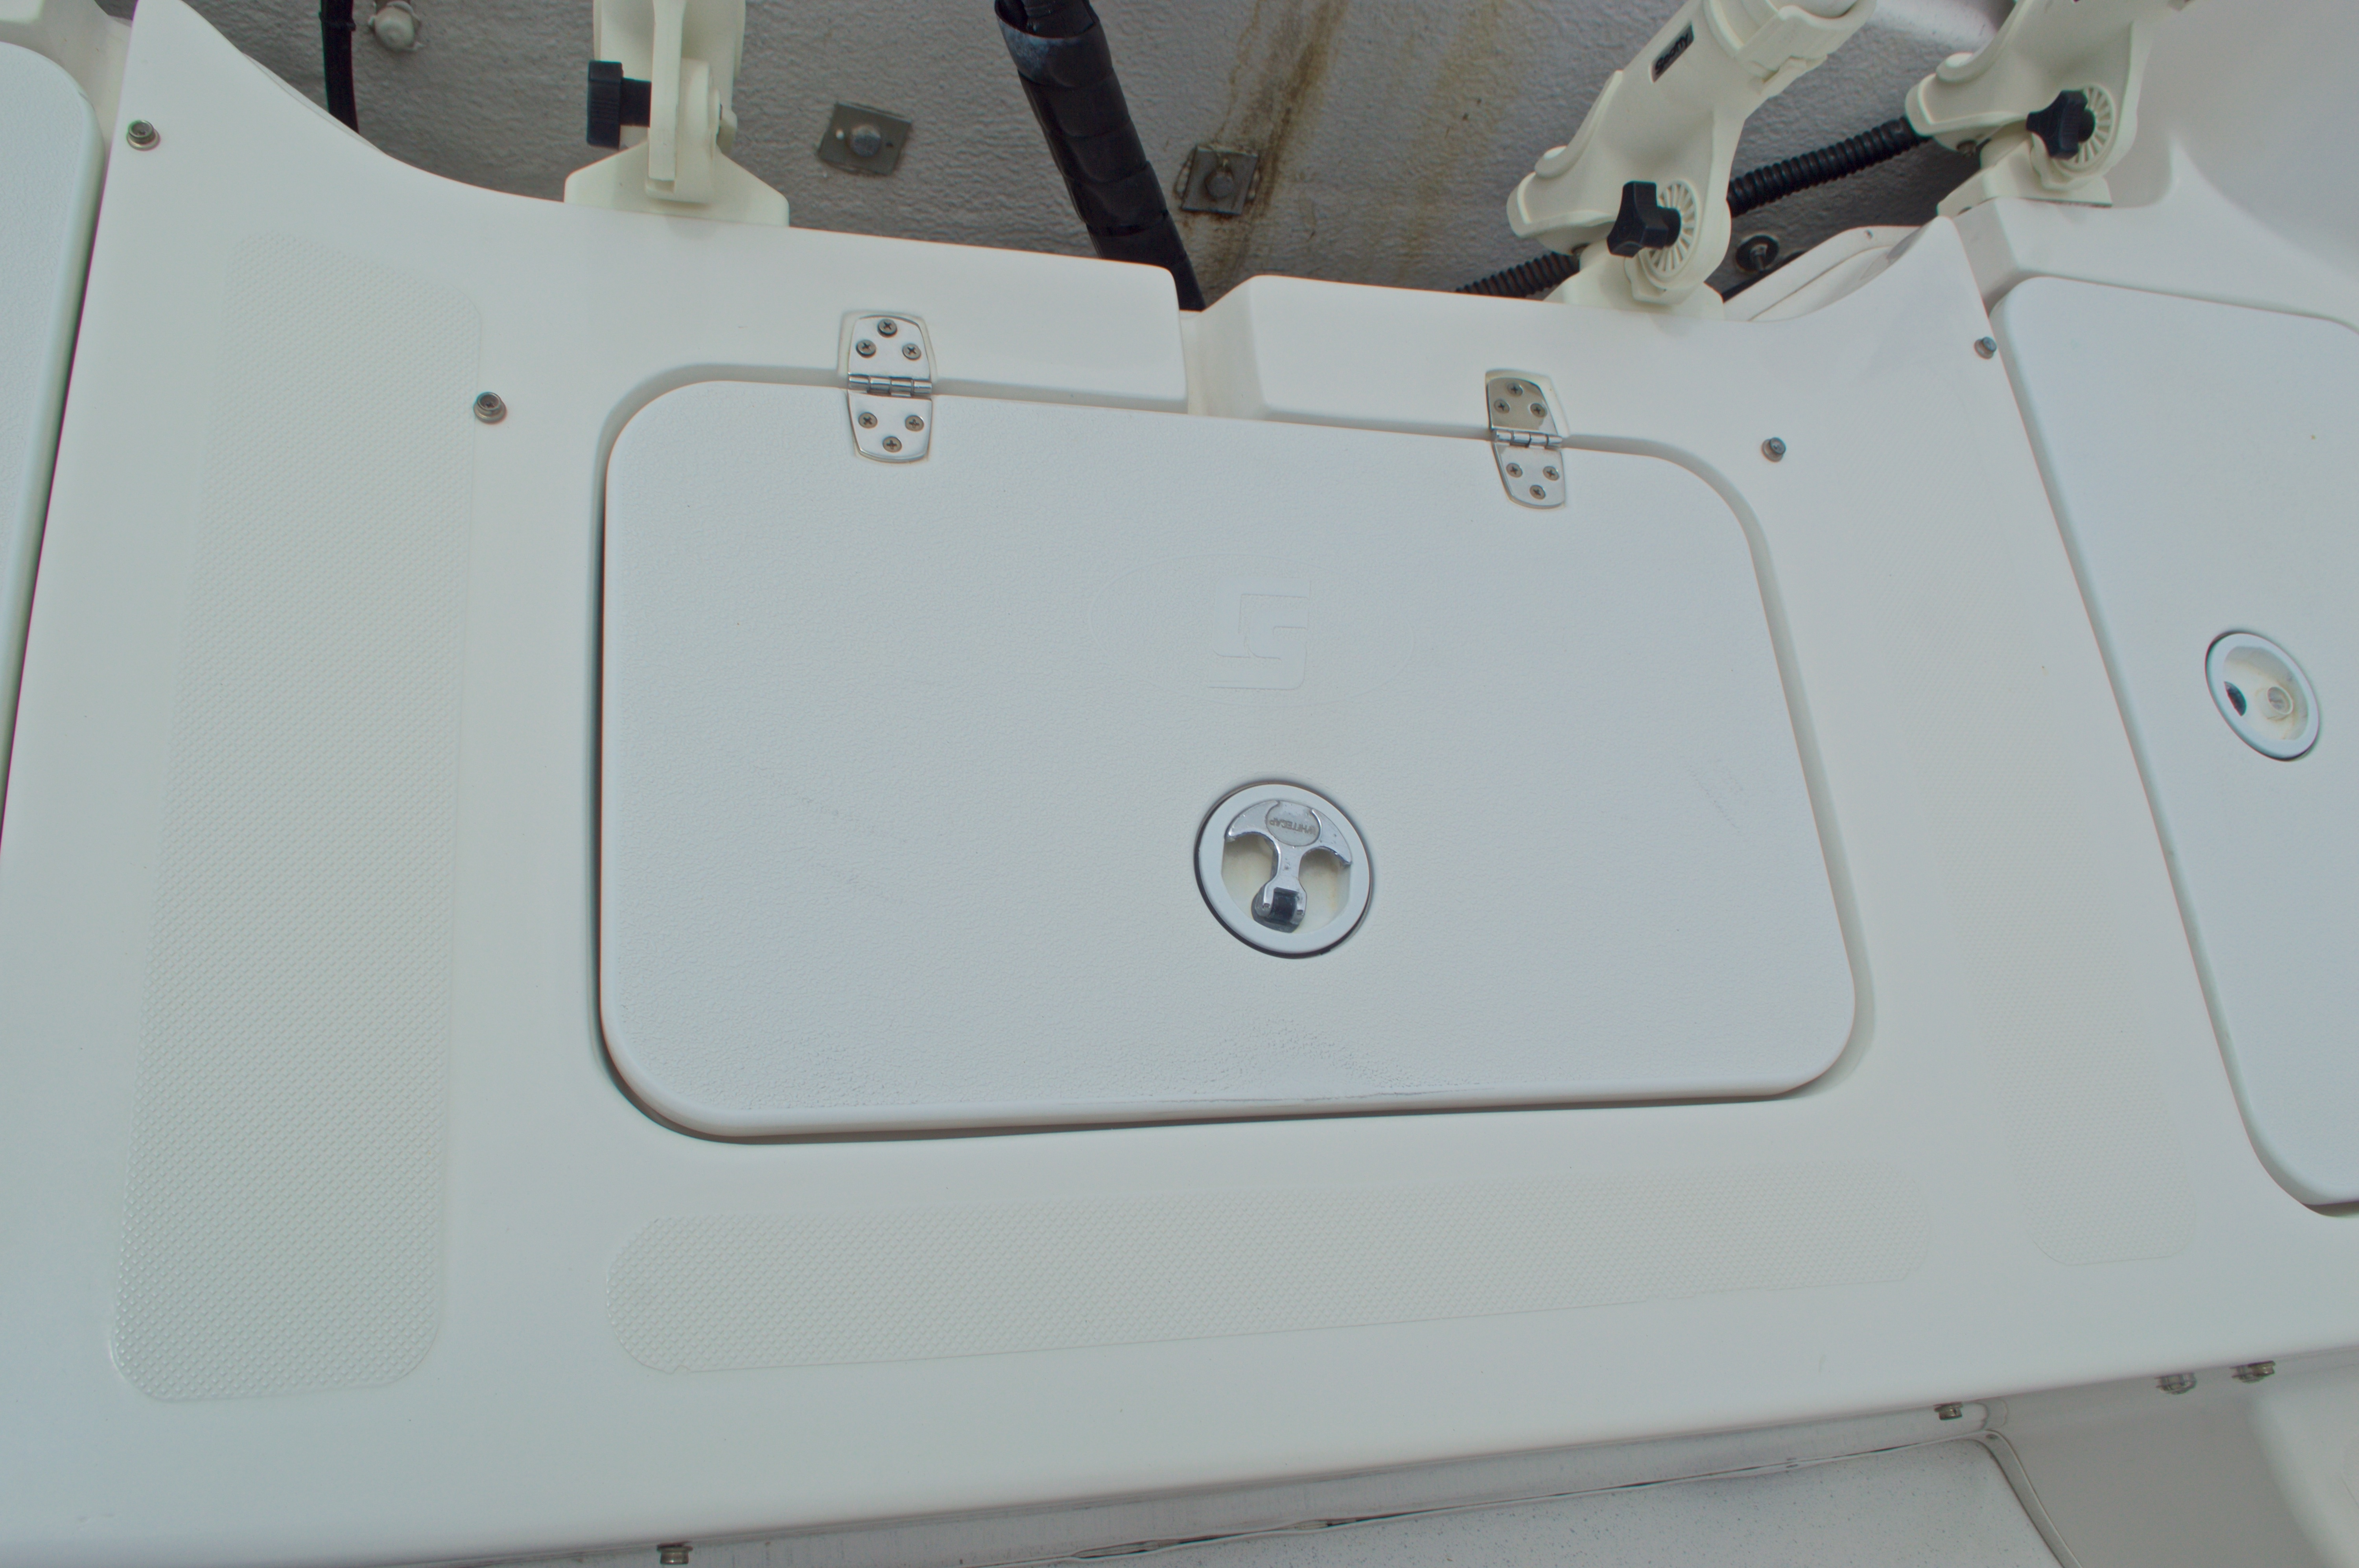 Thumbnail 13 for Used 2008 Carolina Skiff 198DLV boat for sale in West Palm Beach, FL